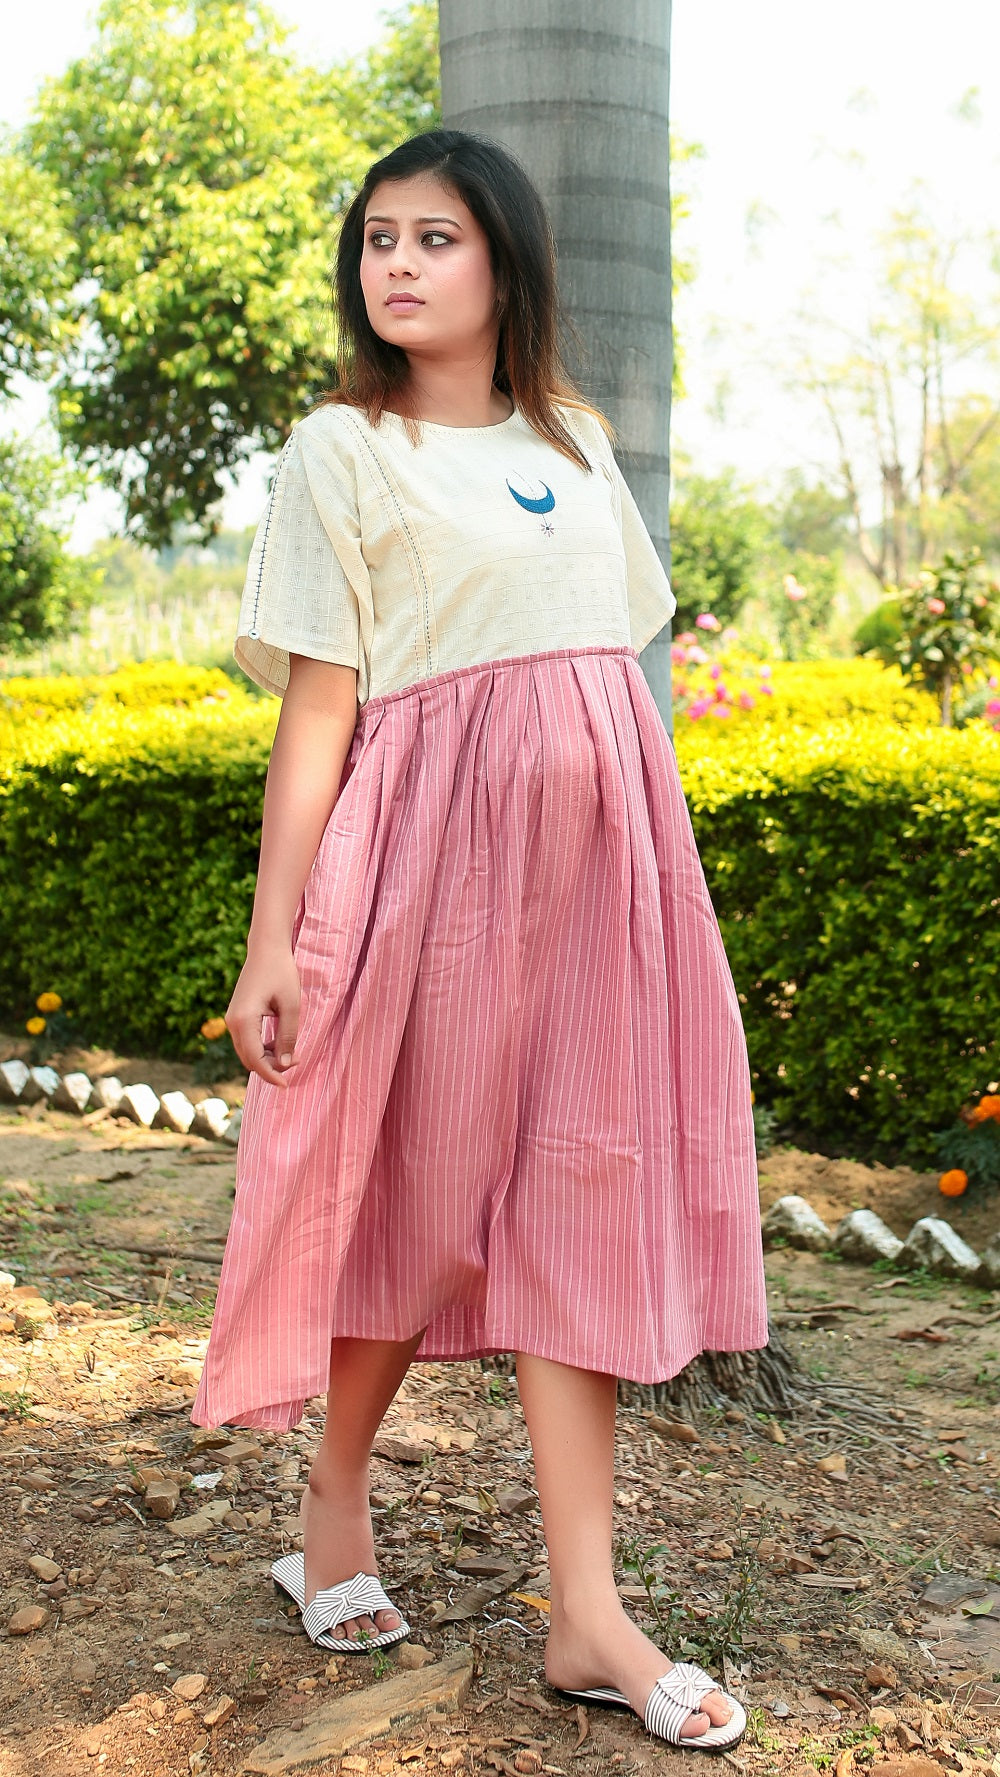 Moon Pink Masakali Dress online at bebaakstudio.com